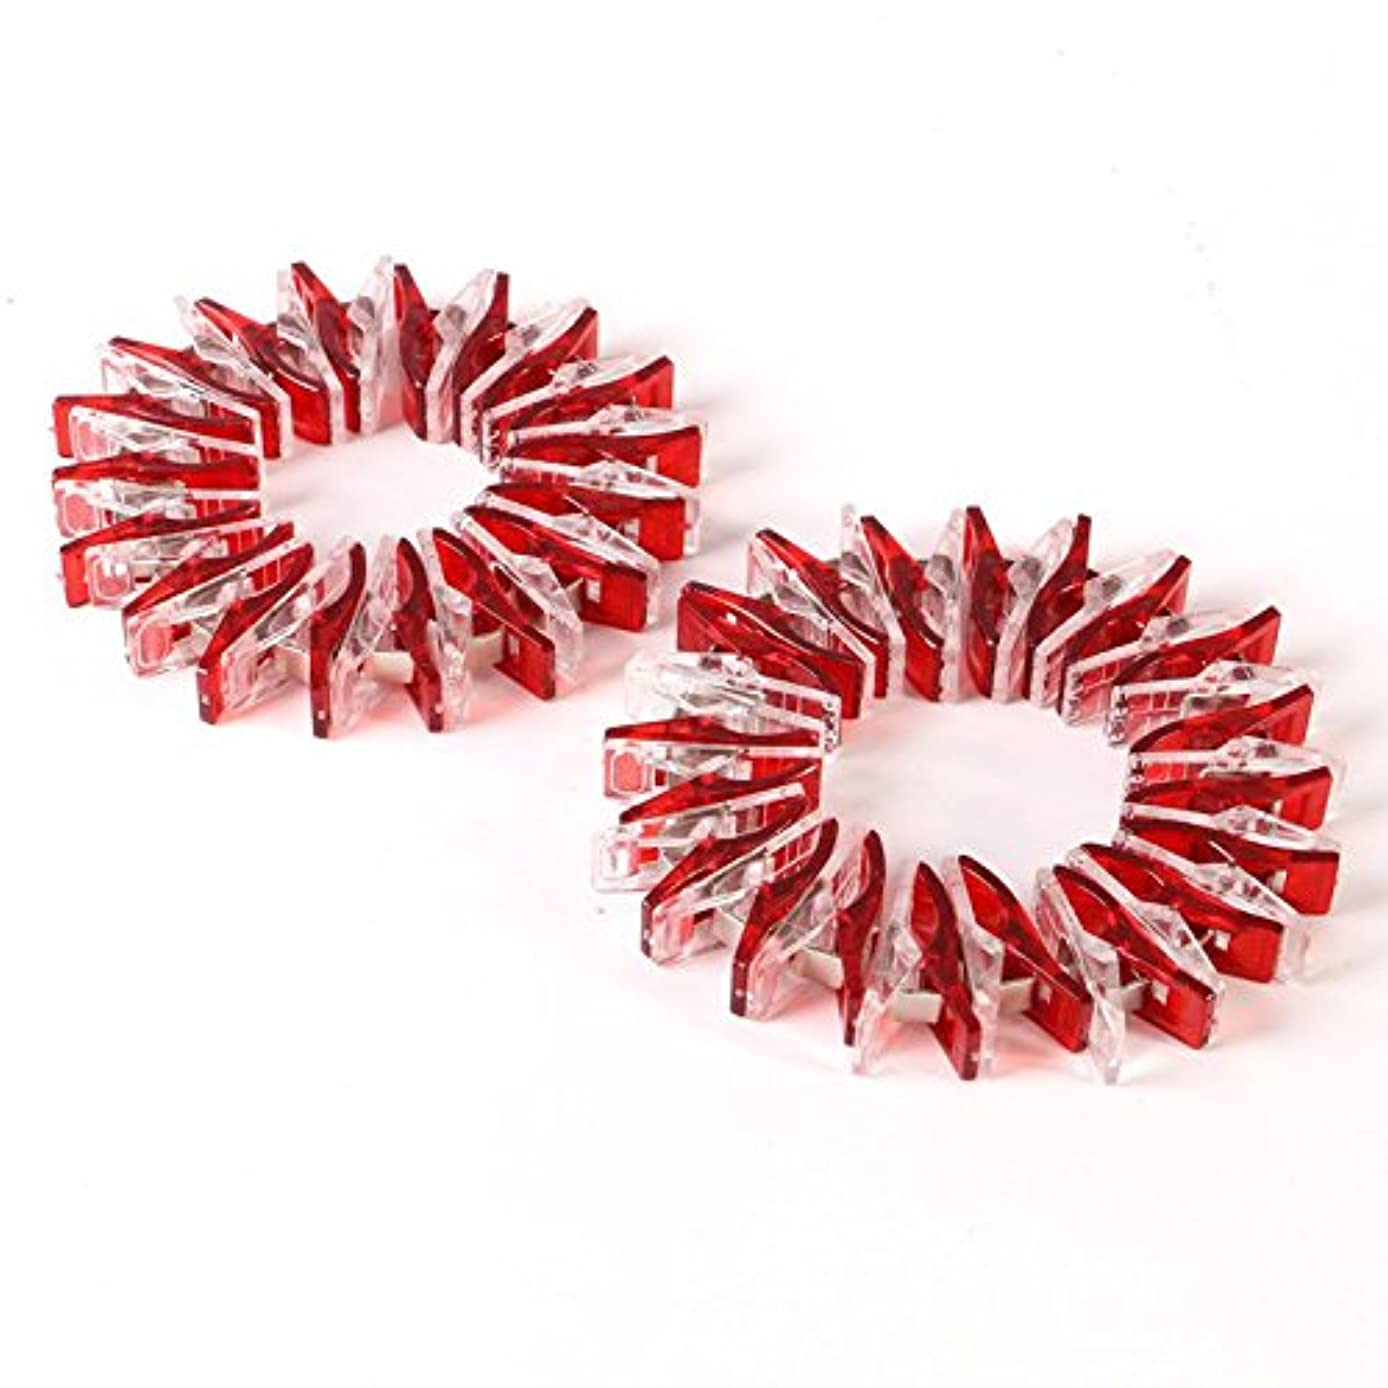 LNKA Wonder Clips 50pcs Quilter Clamps DIY Tools Plastic Sewing Crochet Transparent Small Package Edge Clip 9 Colors for Choose (Red-50pcs)